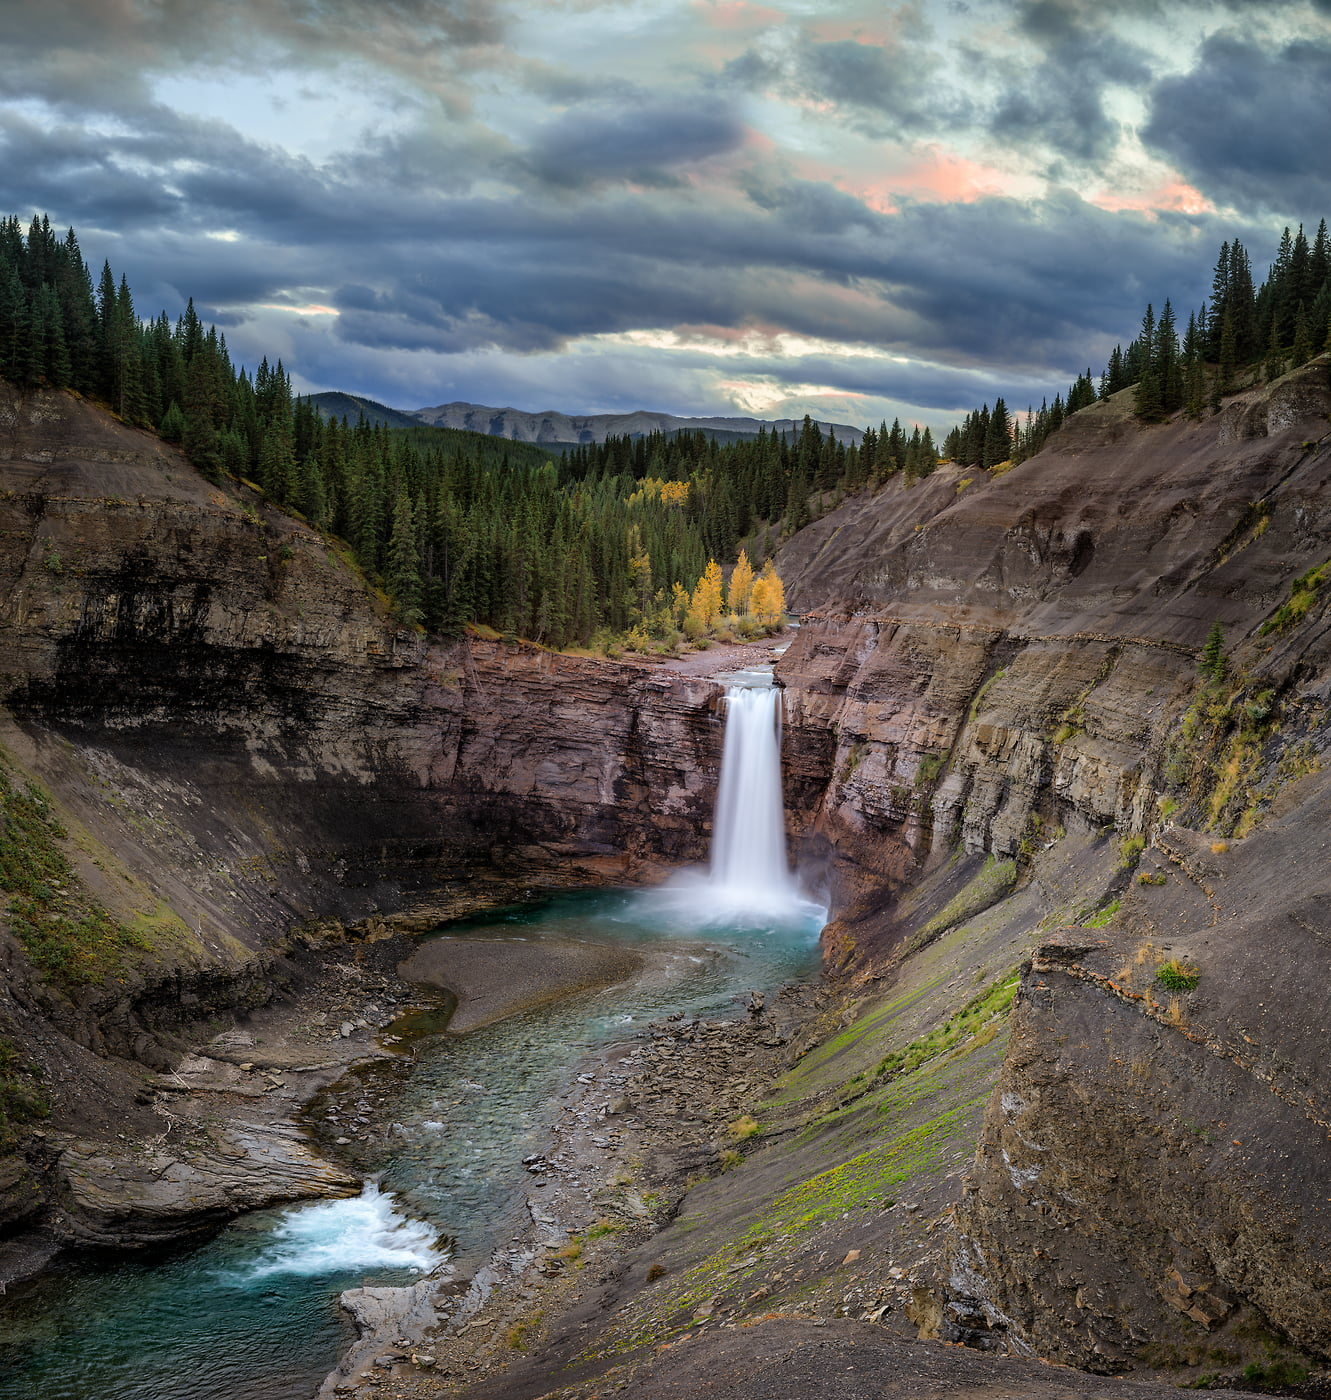 618 megapixels! A very high resolution, large-format VAST photo print of a waterfall in Ram Falls Provincial Park; landscape photograph created by Scott Dimond in Ram Falls Provincial Park, Alberta, Canada